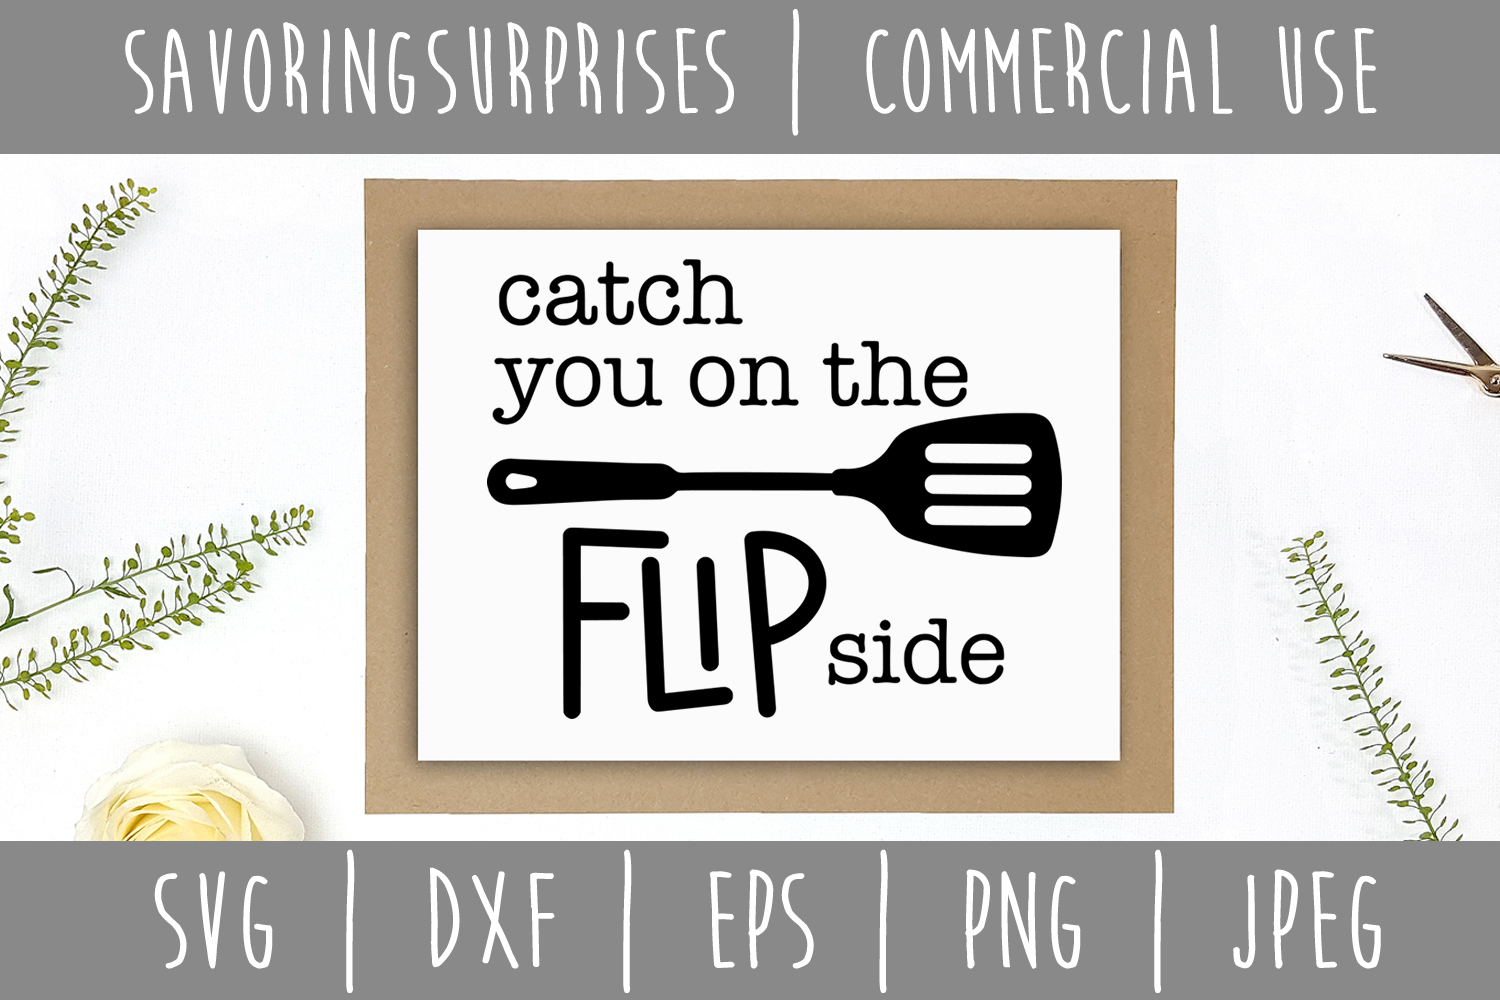 Catch You on the Flip Side SVG, DXF, EPS, PNG JPEG example image 2